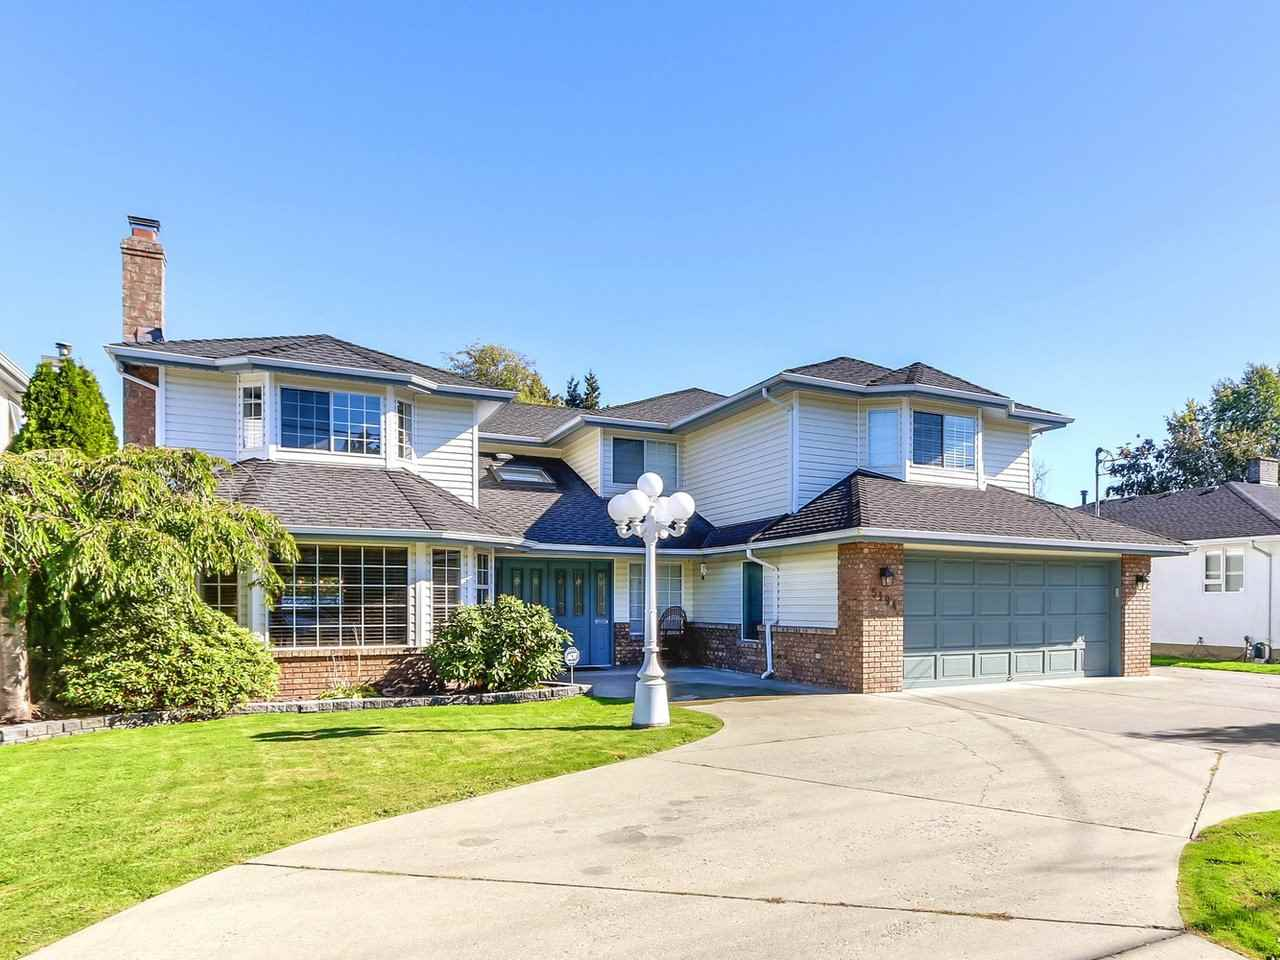 Main Photo: 5194 57 Street in Delta: Hawthorne House for sale (Ladner)  : MLS® # R2211513